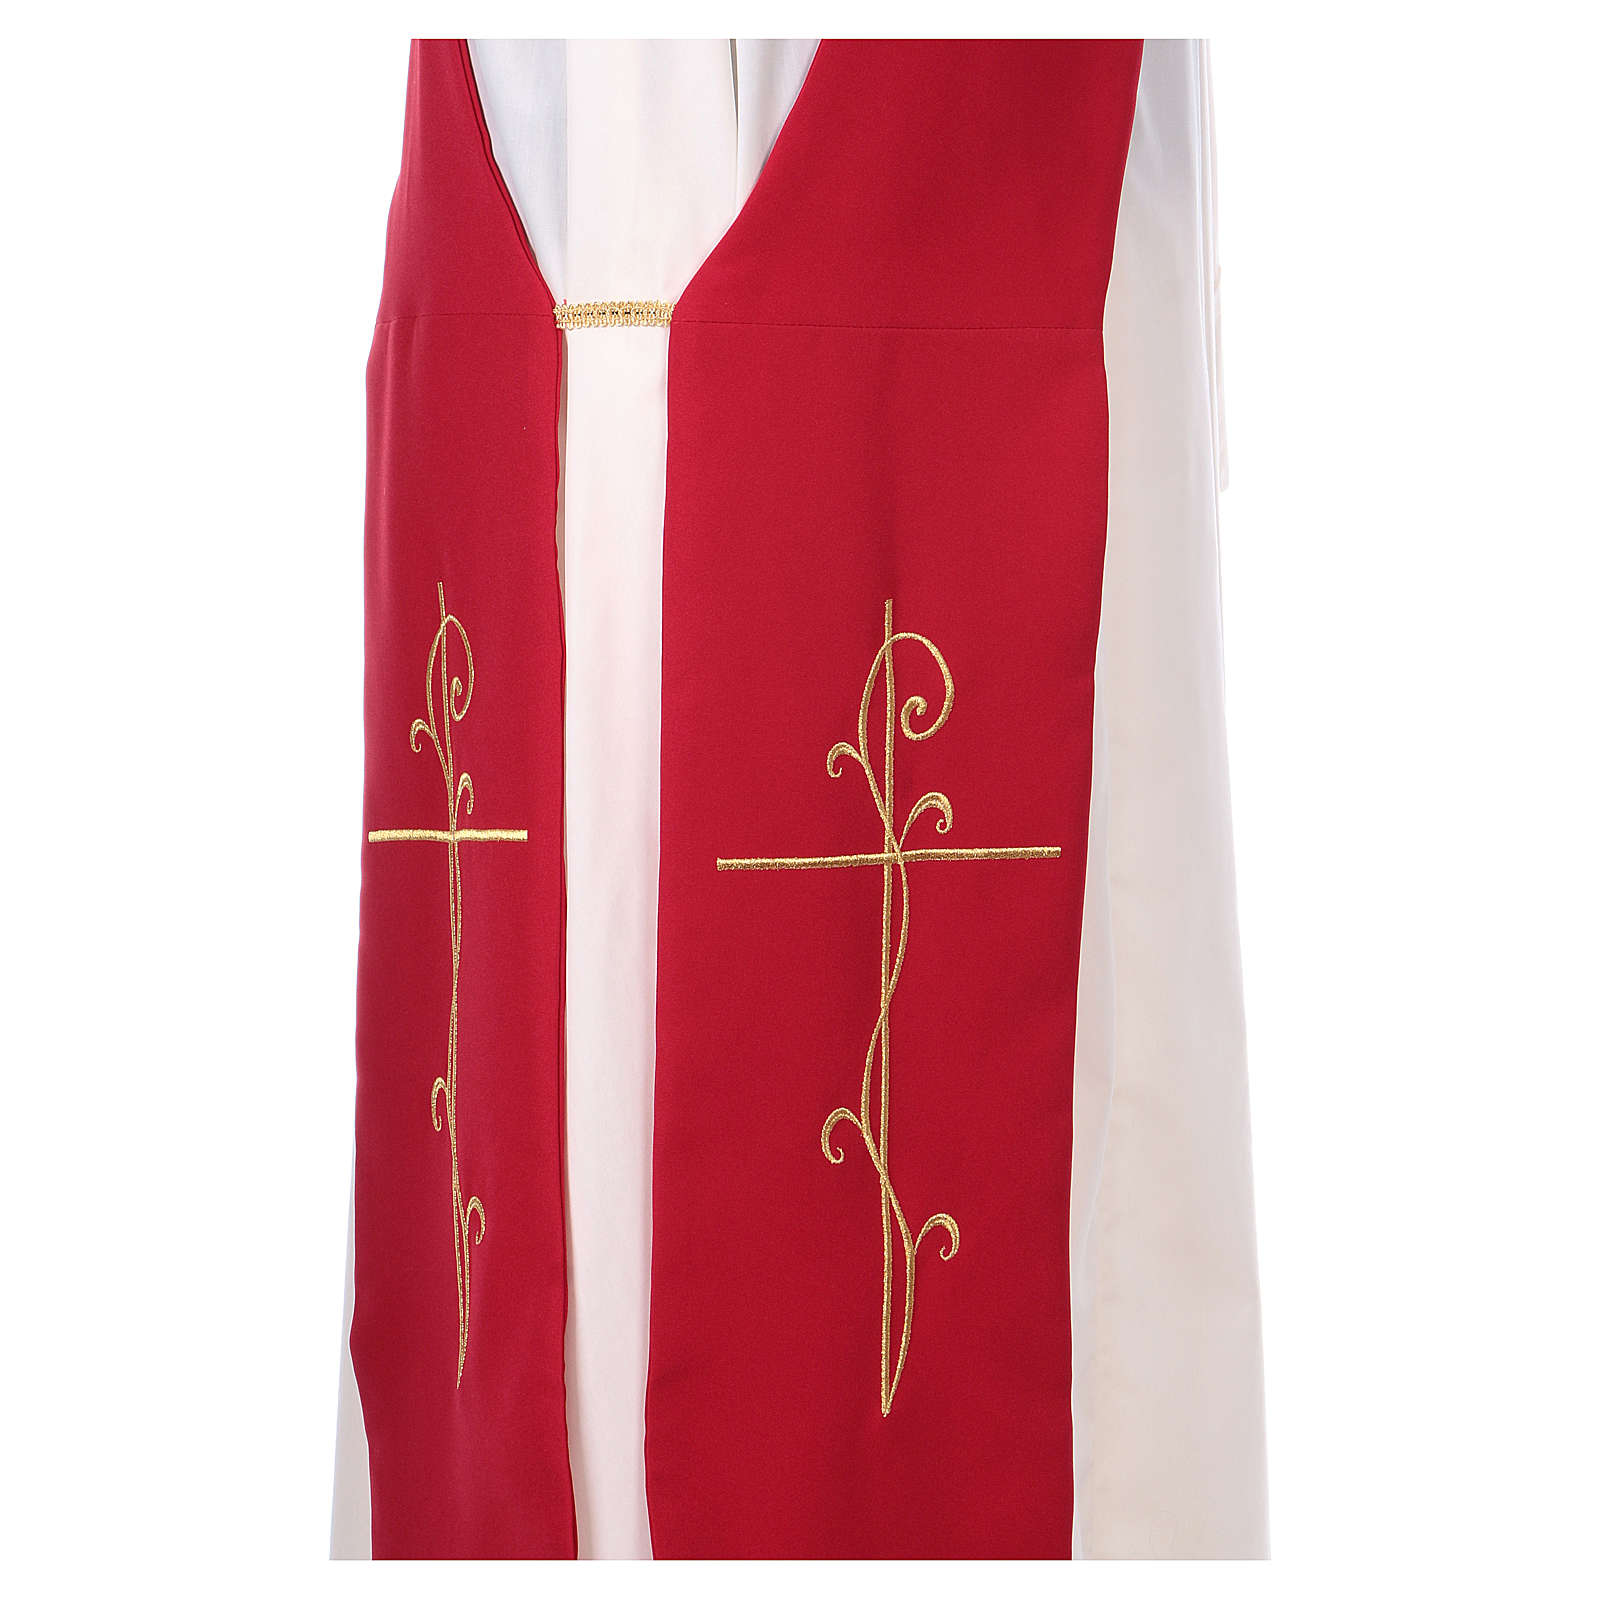 Deacon Stole double-sided cross embroidery polyester Vatican 4